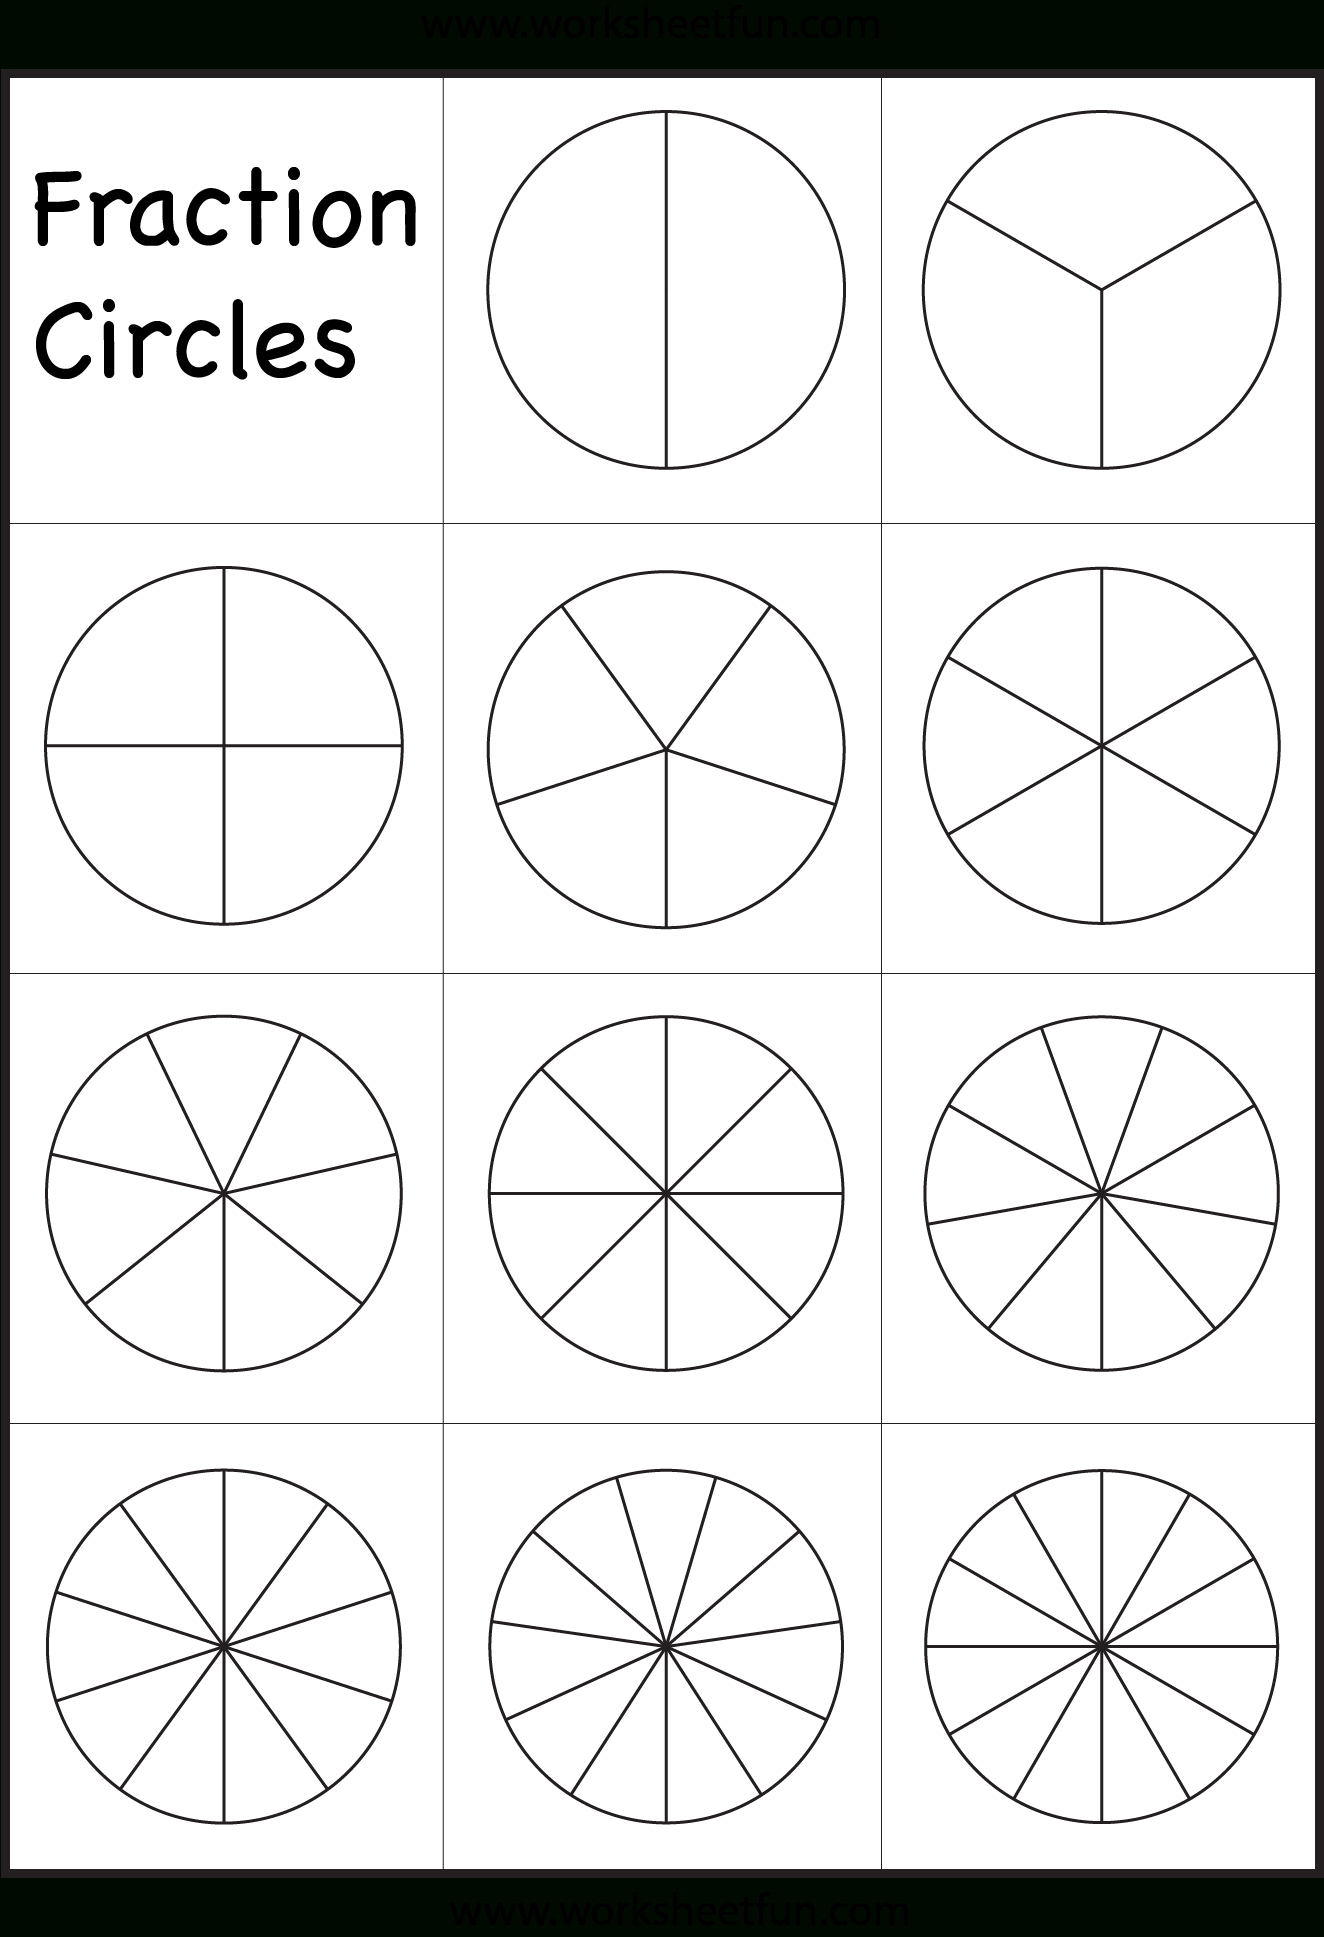 Fraction Circles Template – Printable Fraction Circles – 1 Worksheet - Free Printable Blank Fraction Circles